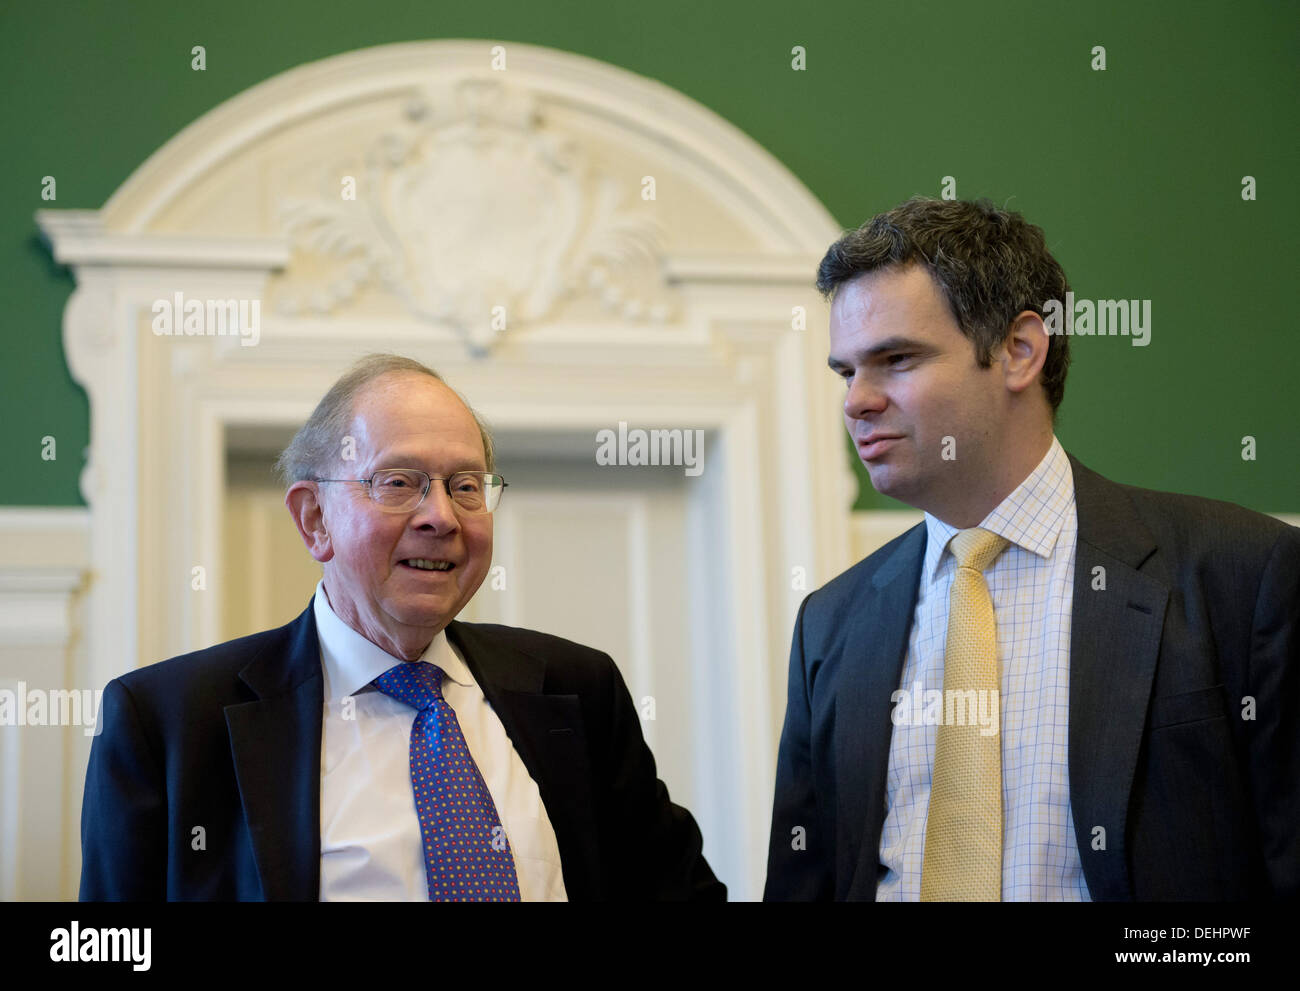 Lawyer Franz Guenter Siebeck (L) and Wolfgang Ruths, head of division at the Federal Air Traffic Controlling - Stock Image